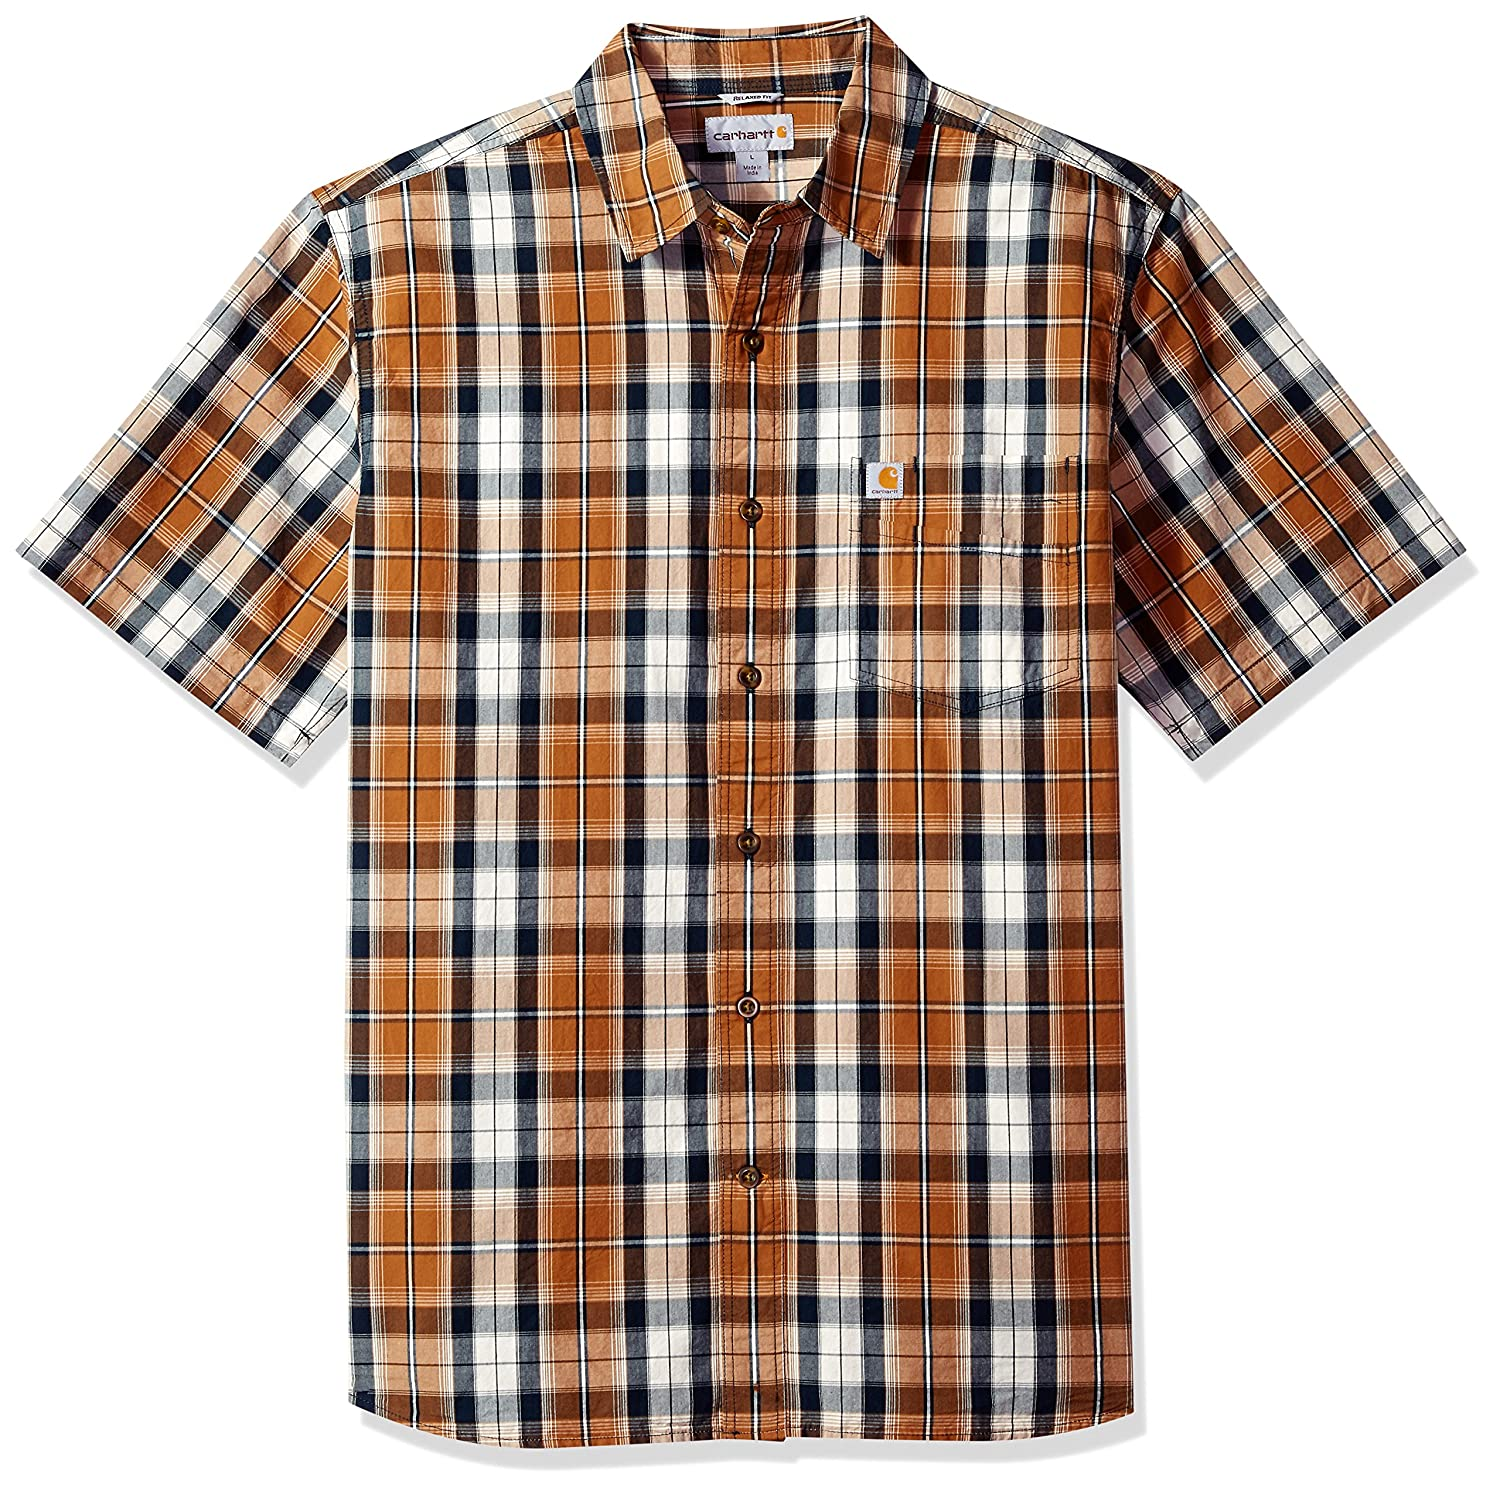 Carhartt SHIRT メンズ B075LZH1ZQ Large|Carhartt Brown Carhartt Brown Large